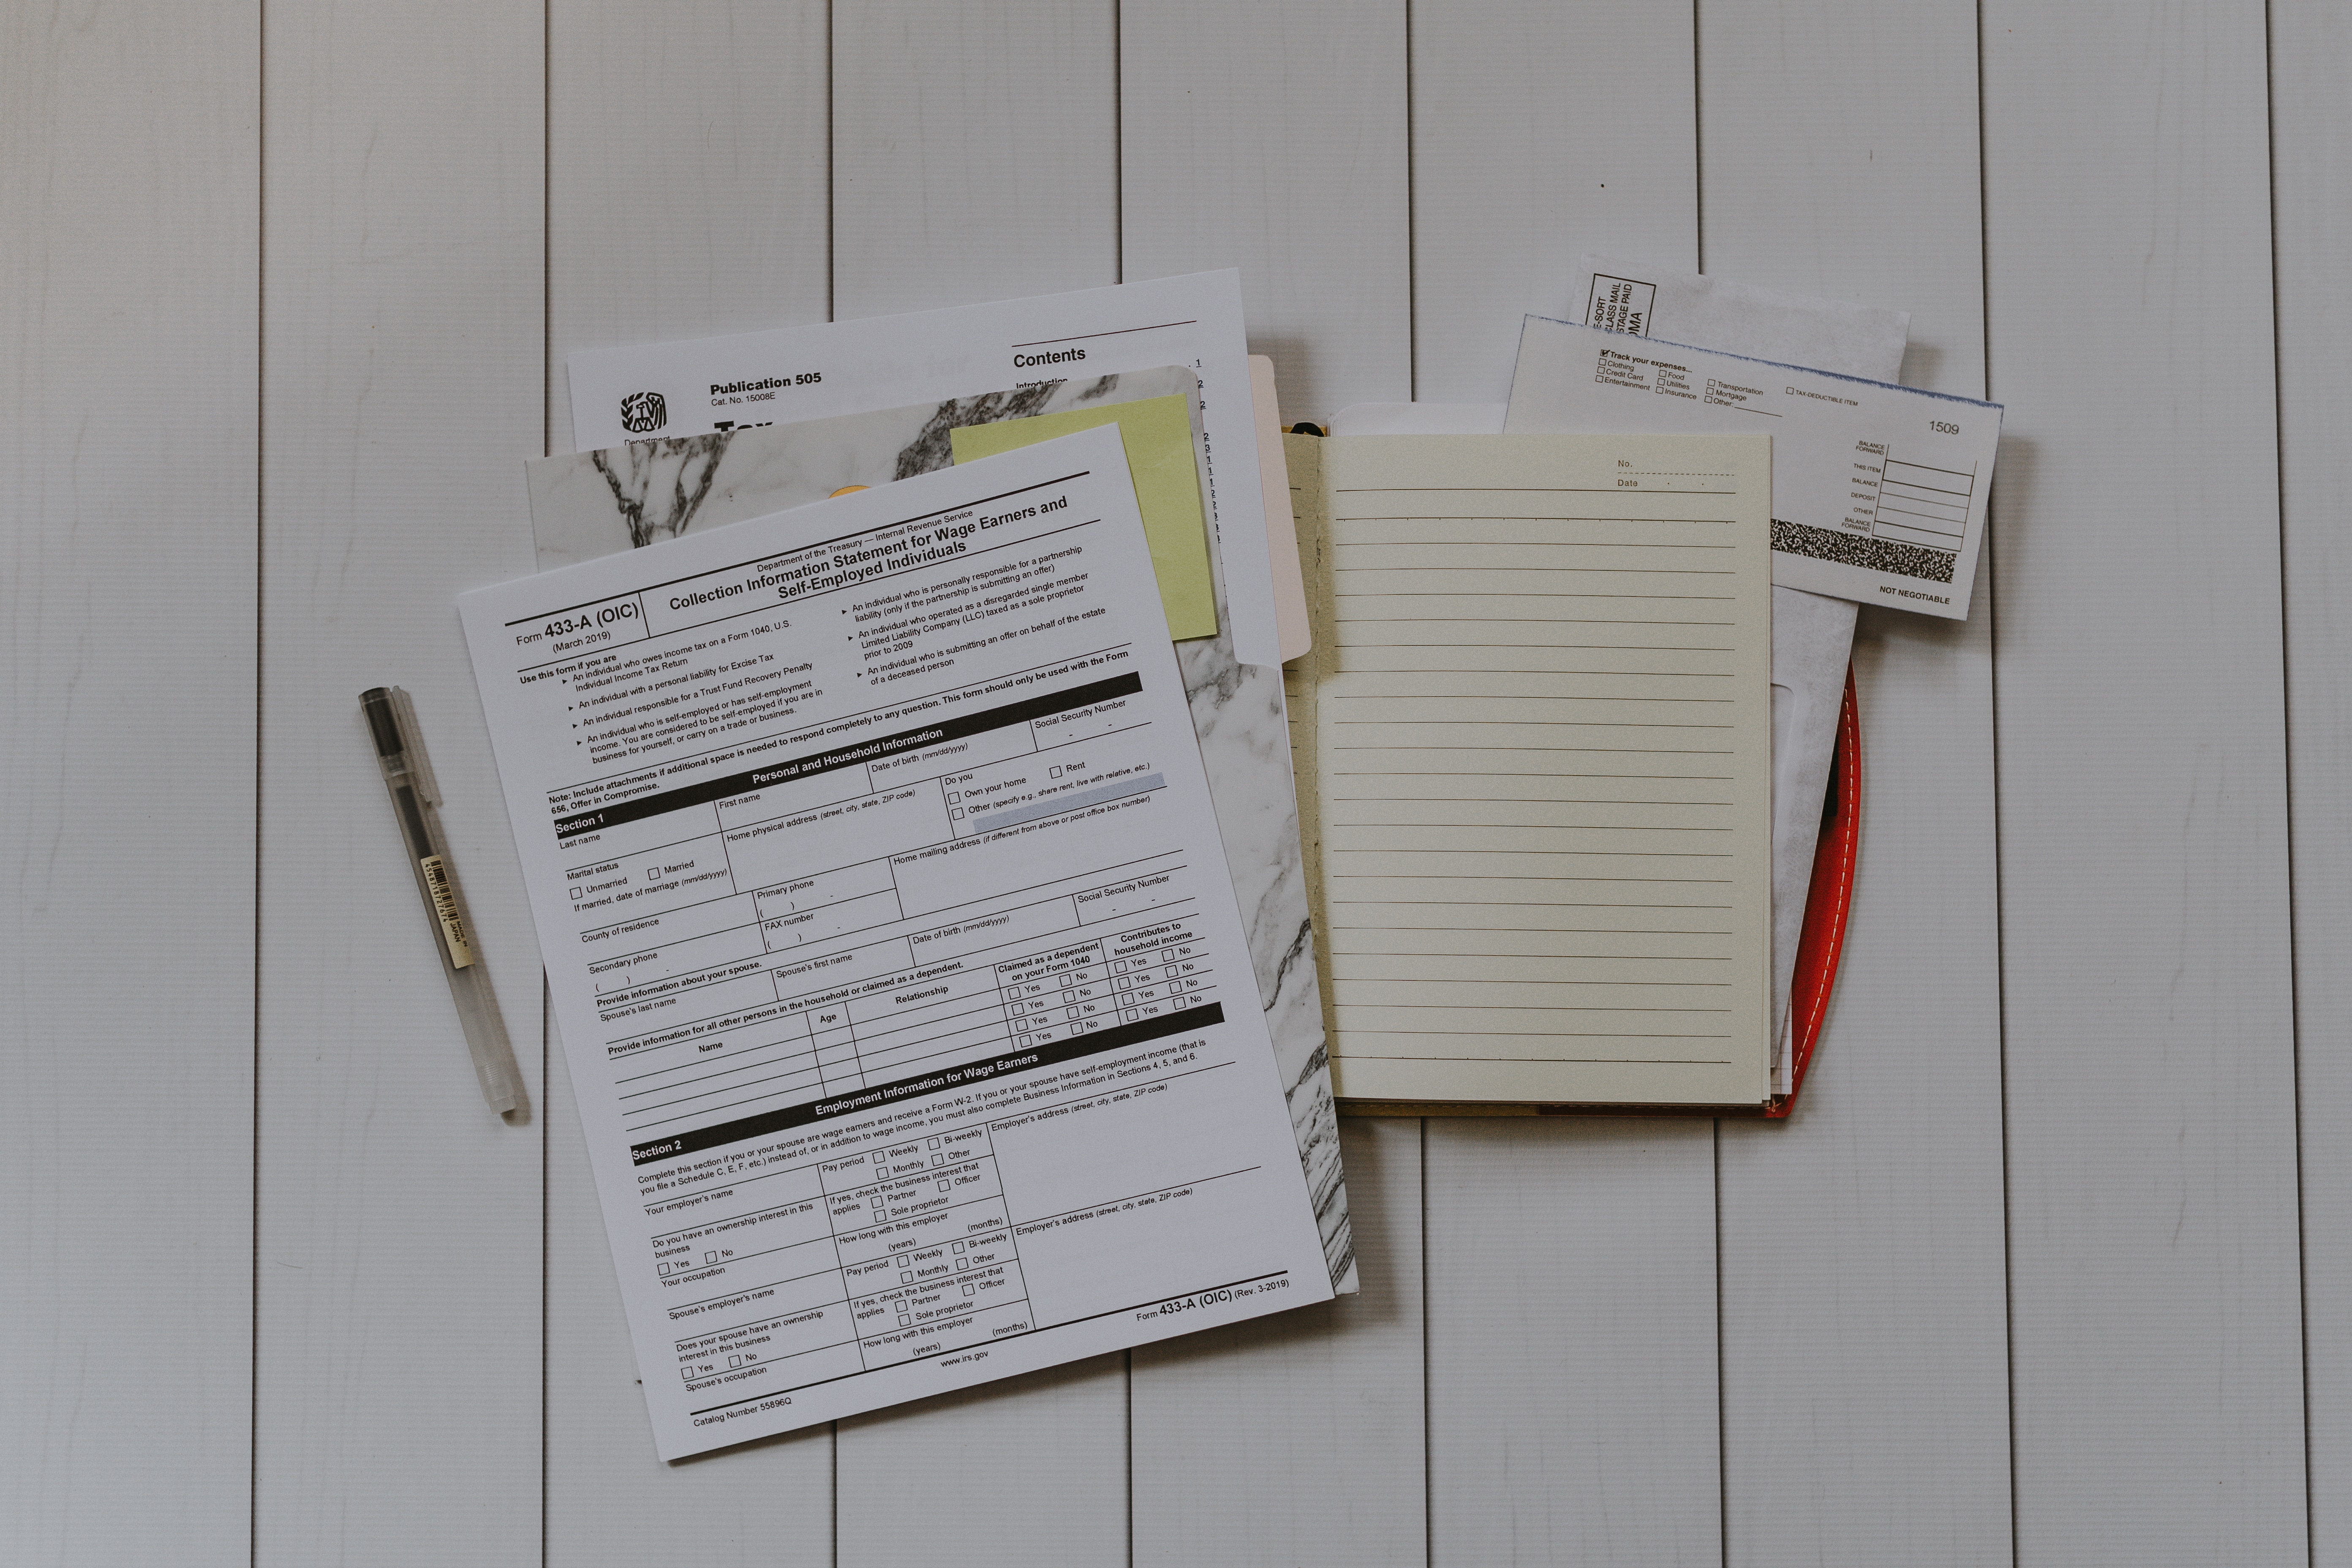 register as self employed with HMRC keeping proper records